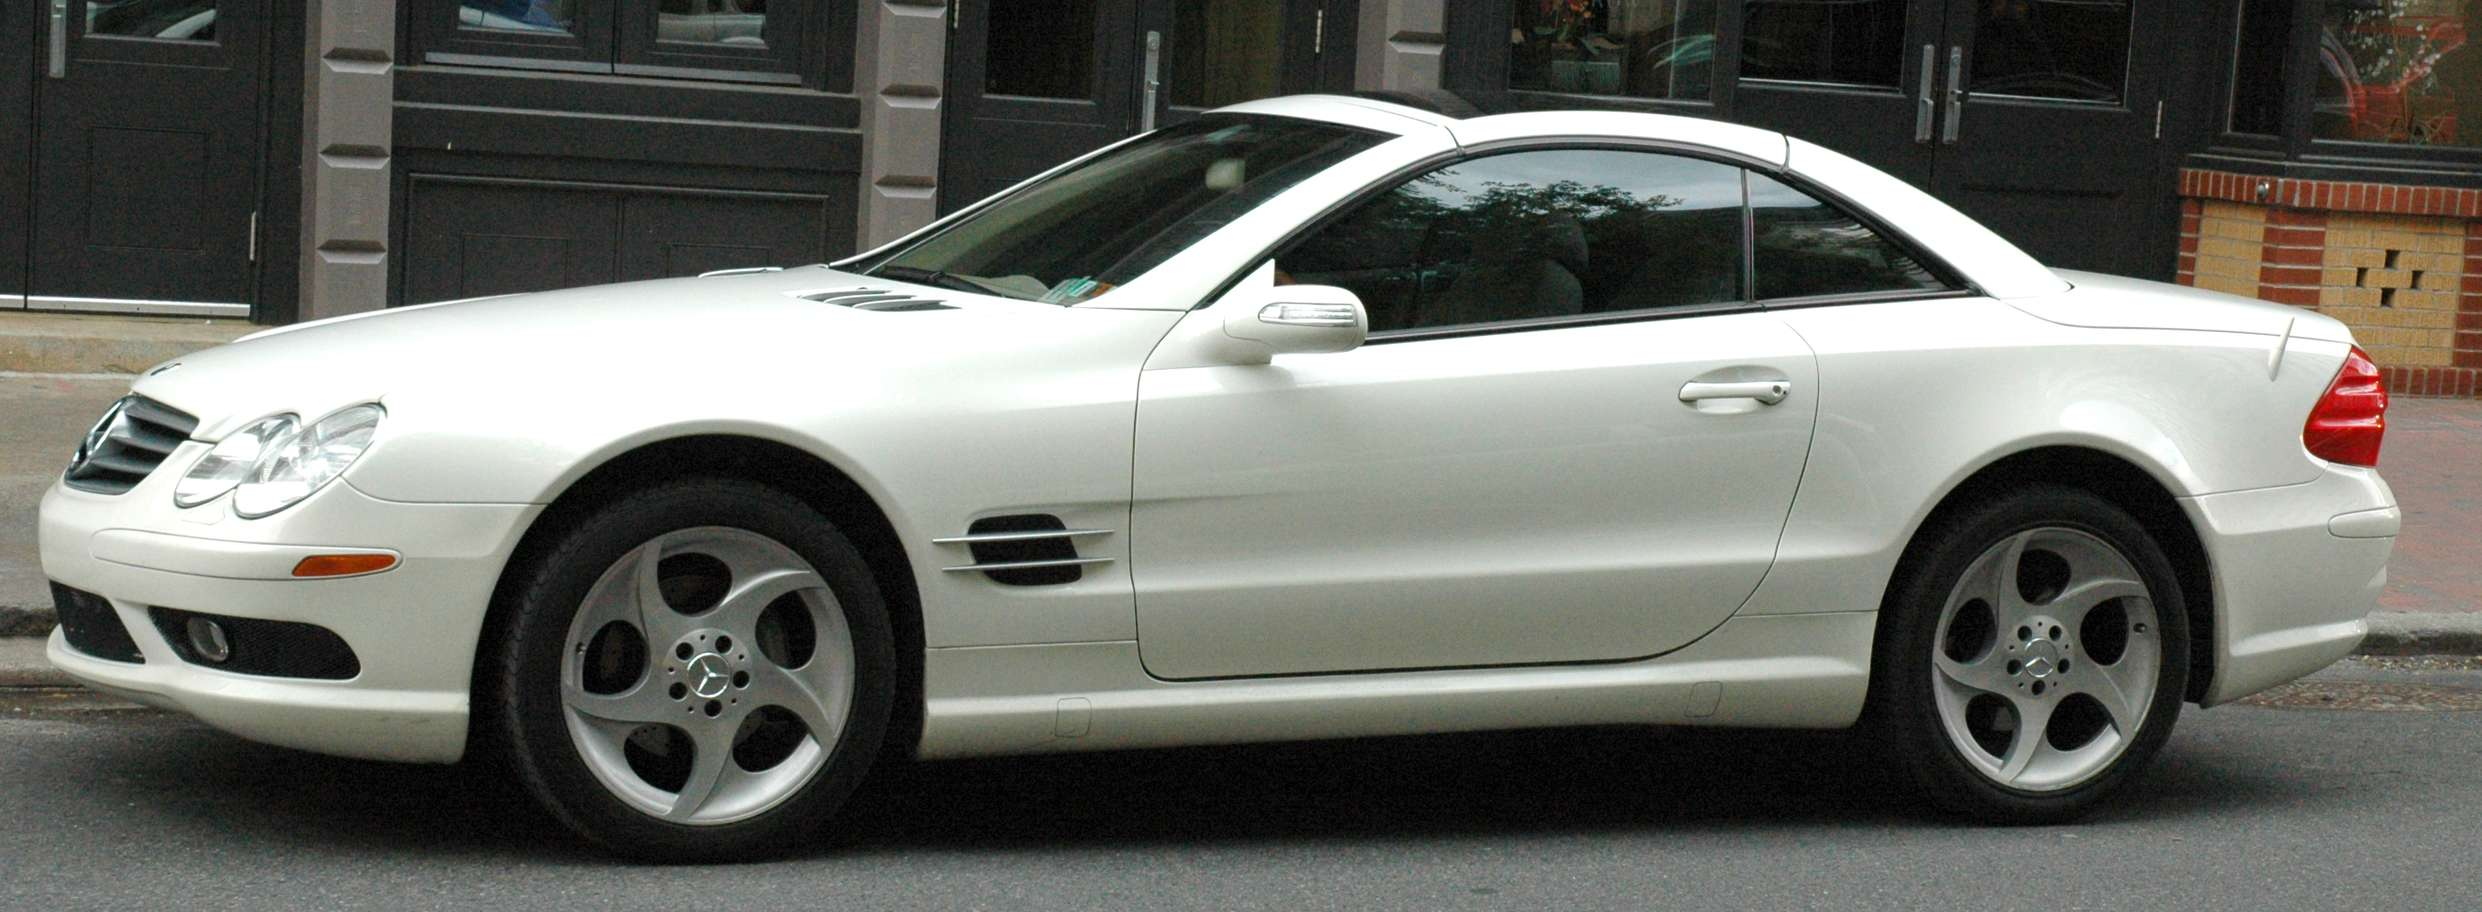 Mercedes-Benz SL 500 #7523817